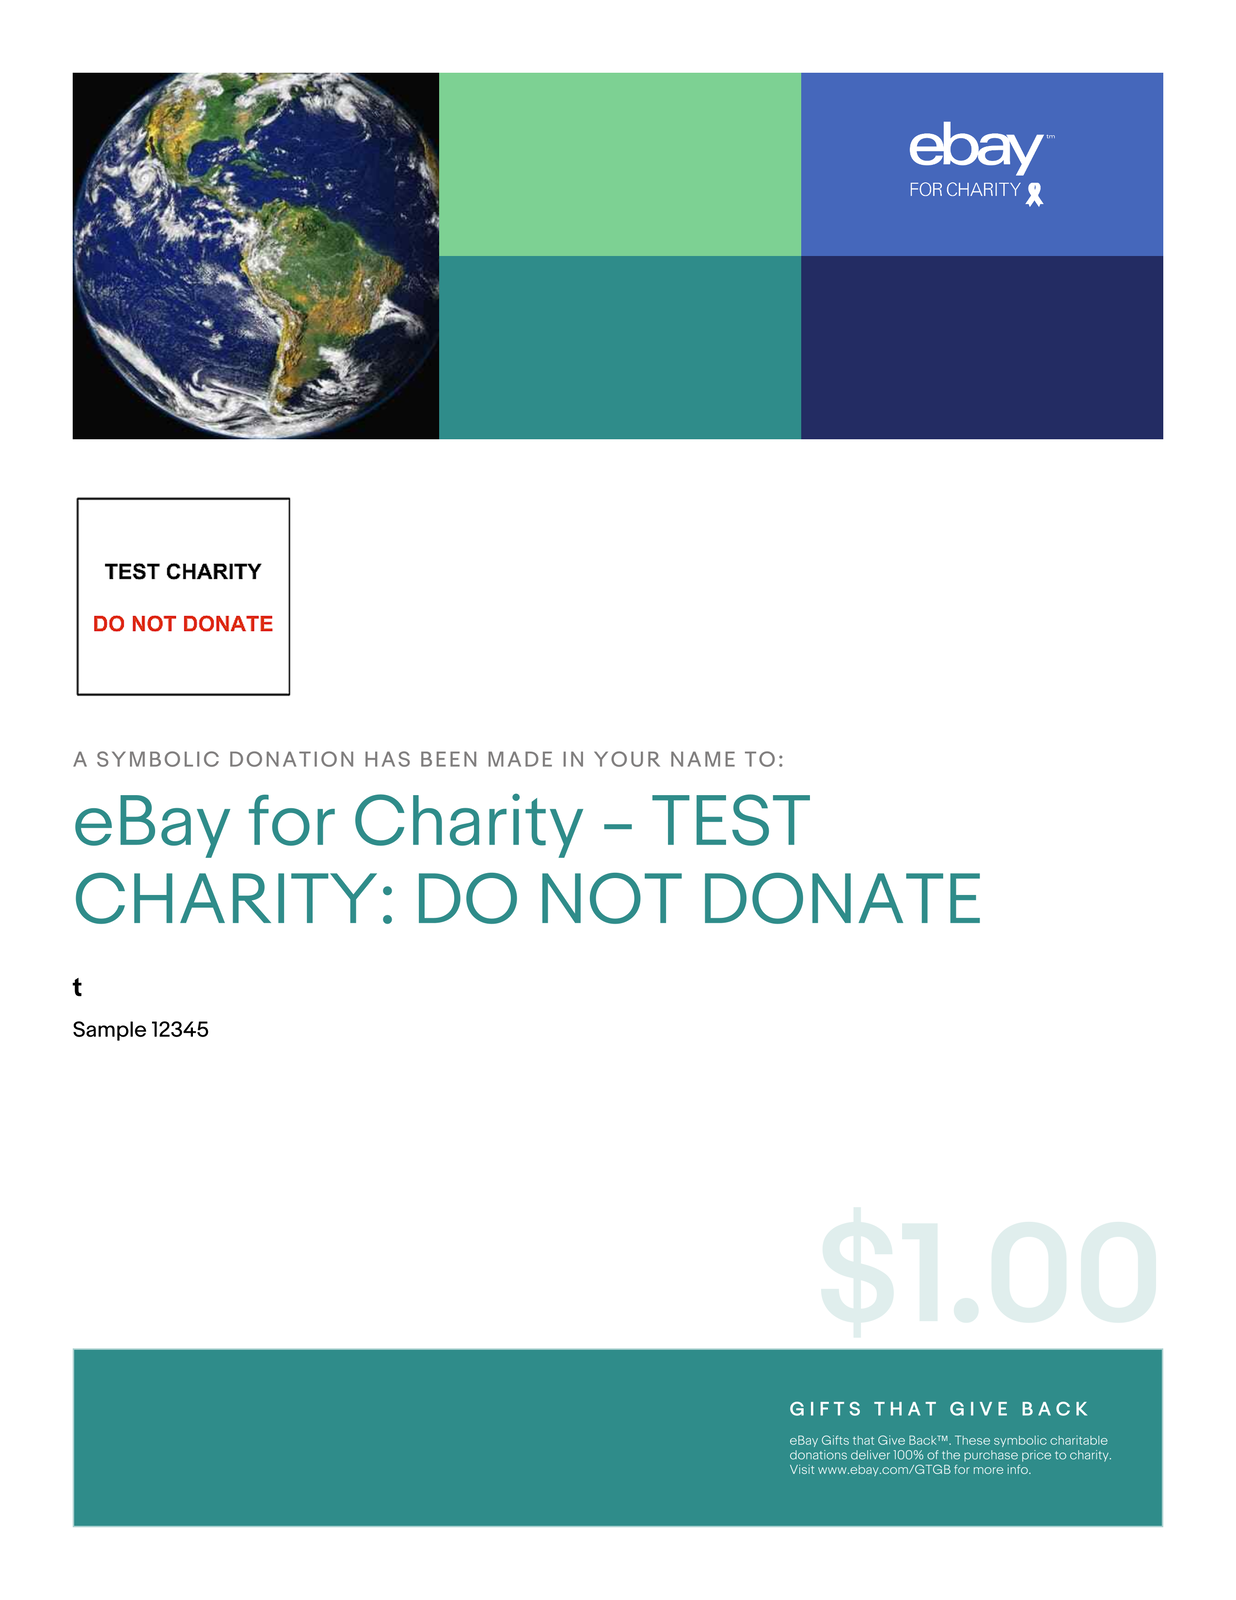 Details about $1 Charitable Donation For: Sample 12345 Sample 12345